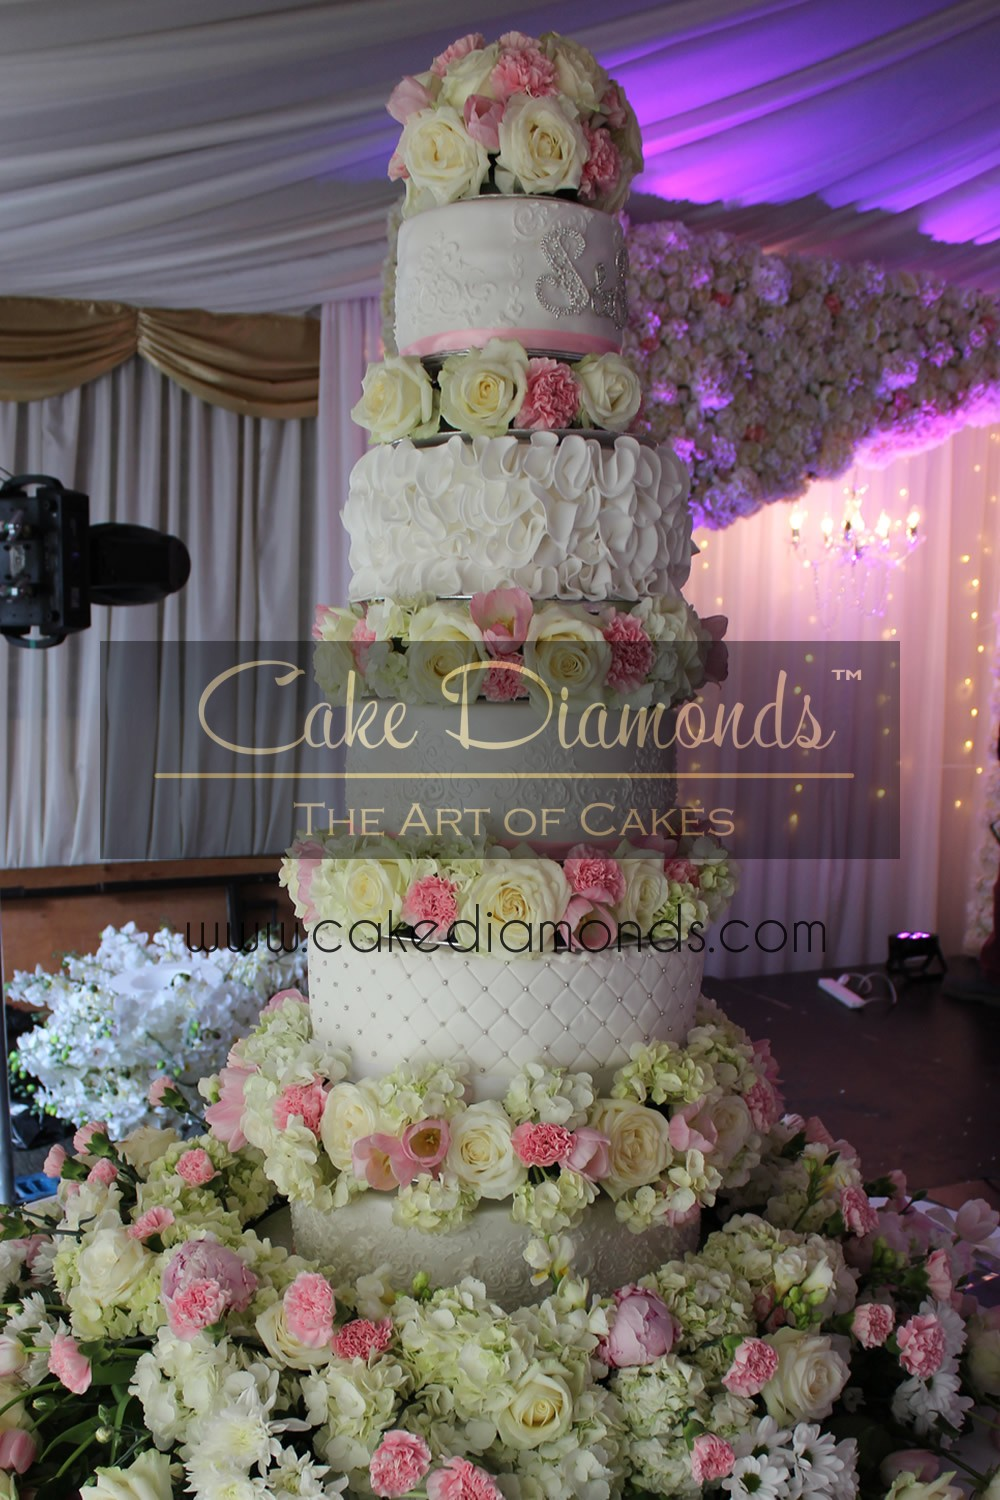 eggless wedding cakes leicester wedding cakes archives page 2 of 4 cake diamonds 13935